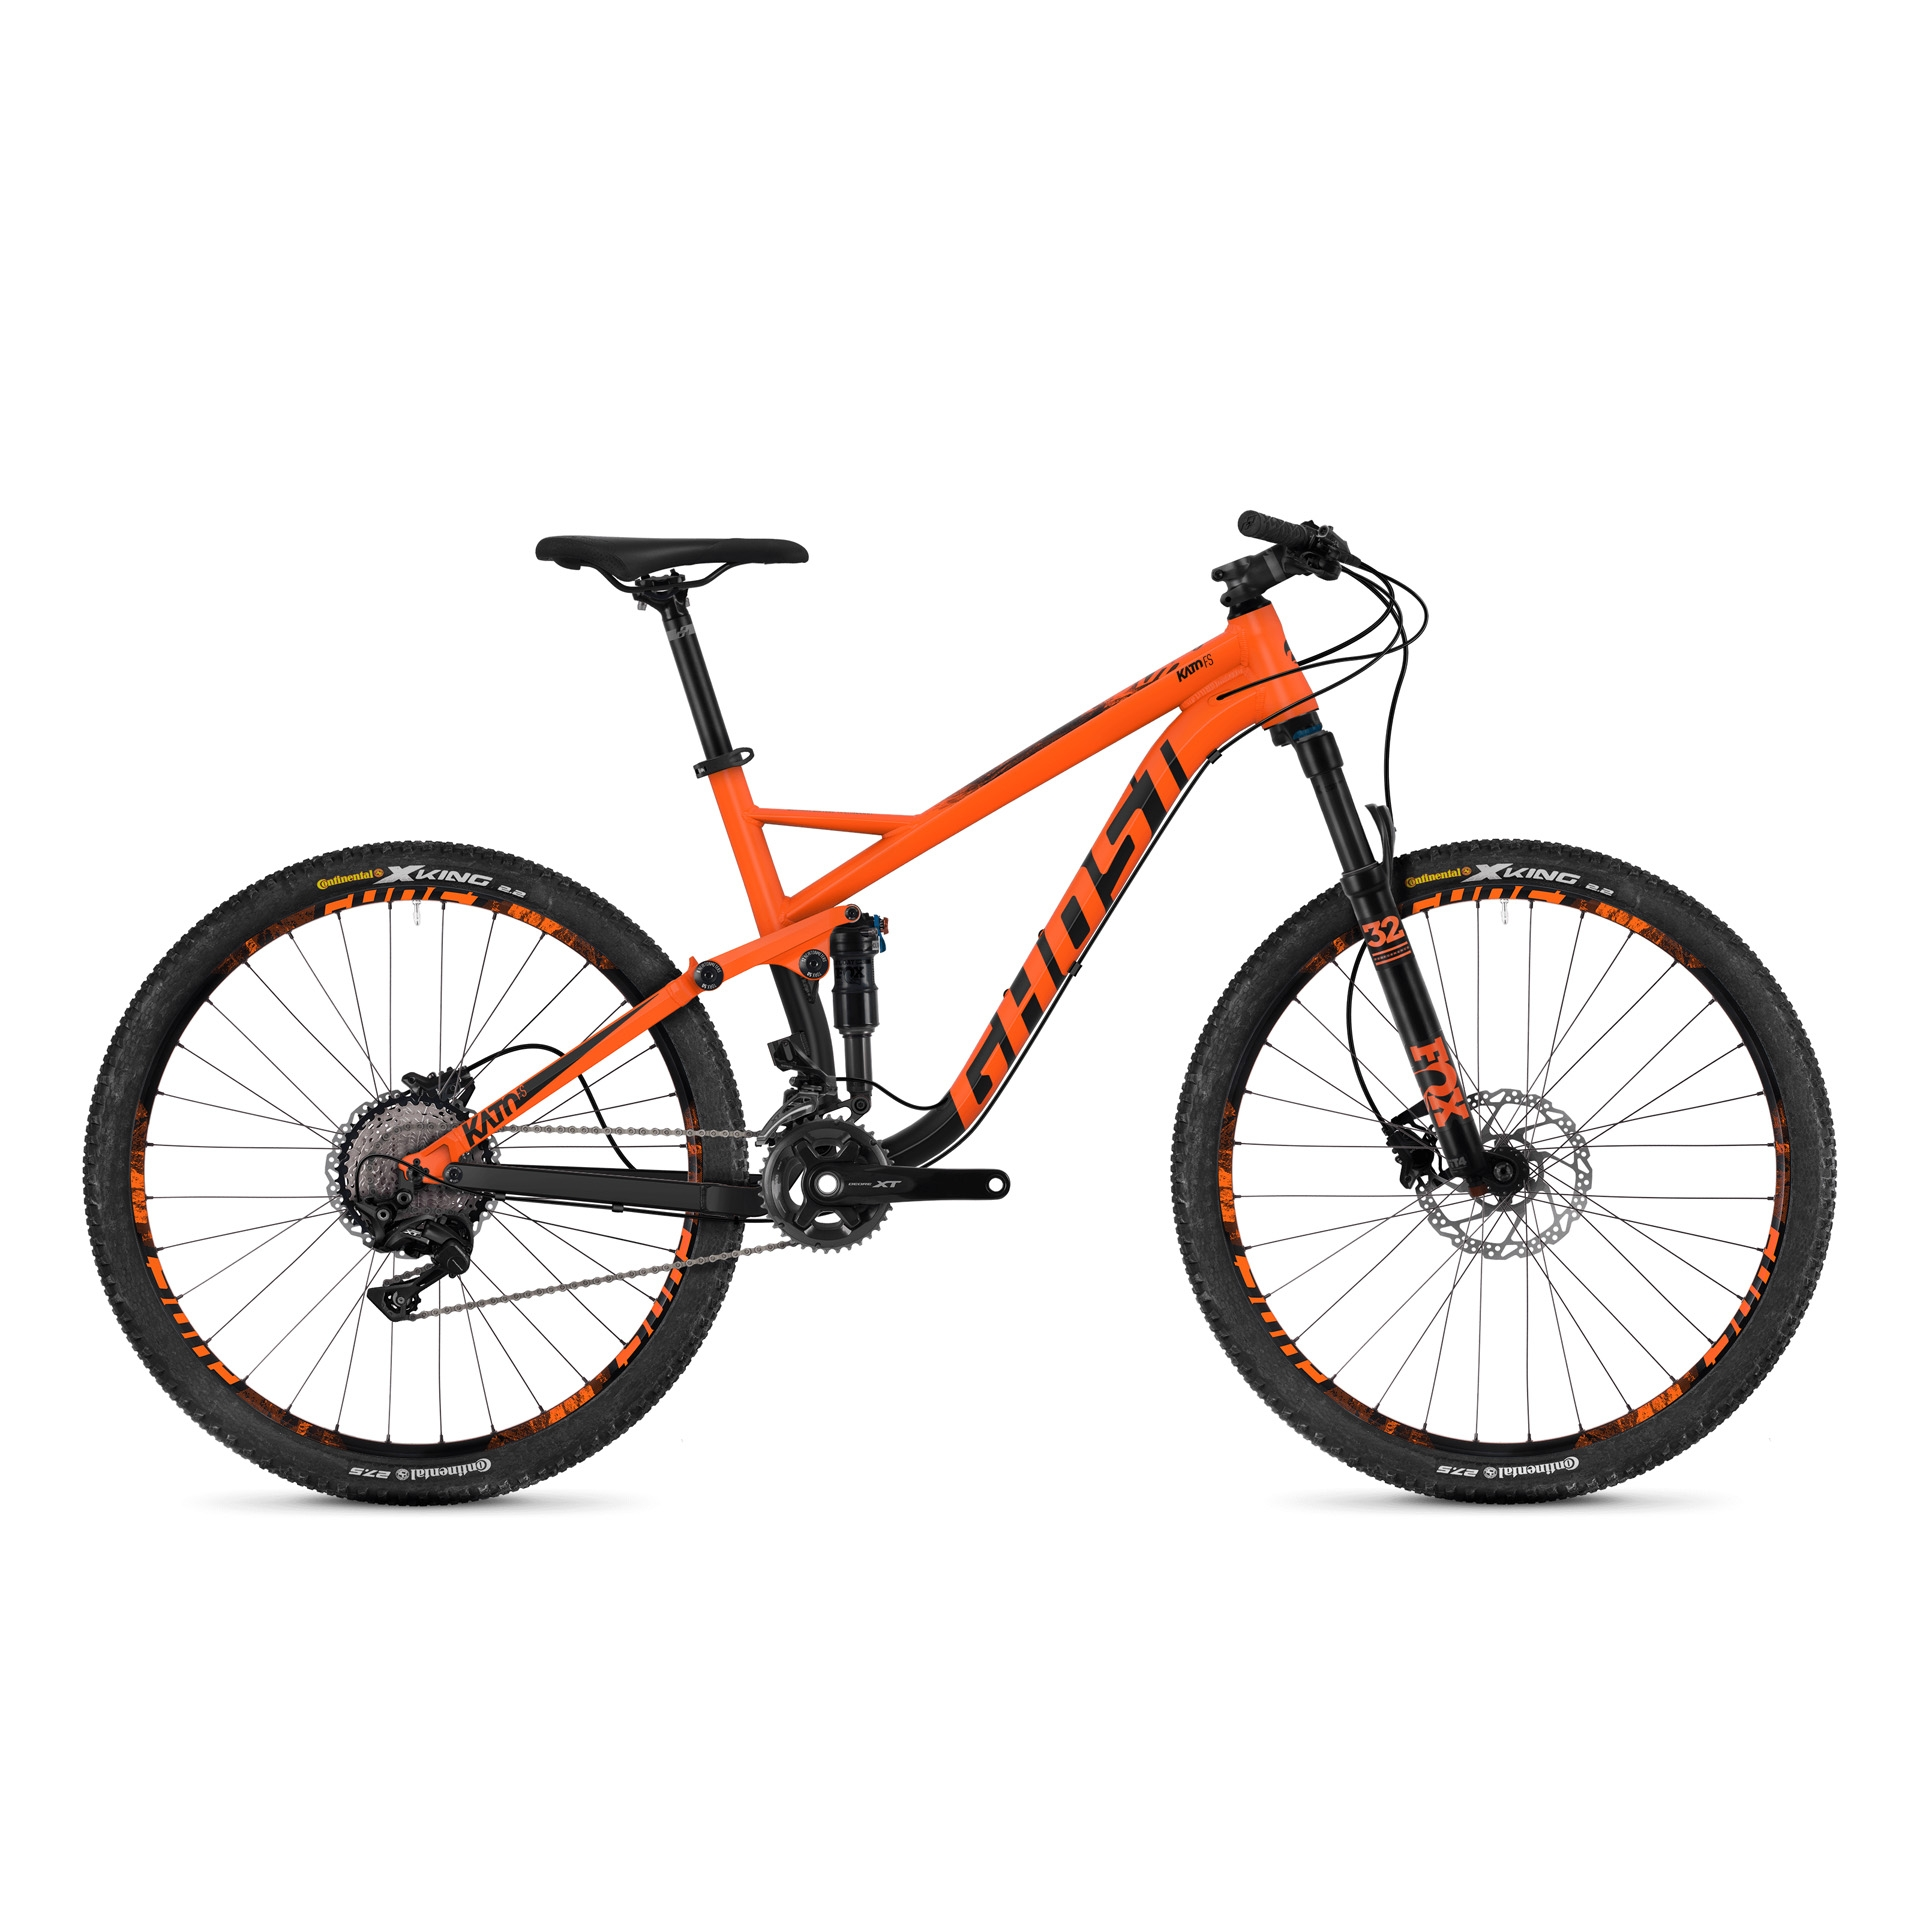 VTT tout suspendu Ghost Kato FS 5.7 27.5 Orange/Noir - M